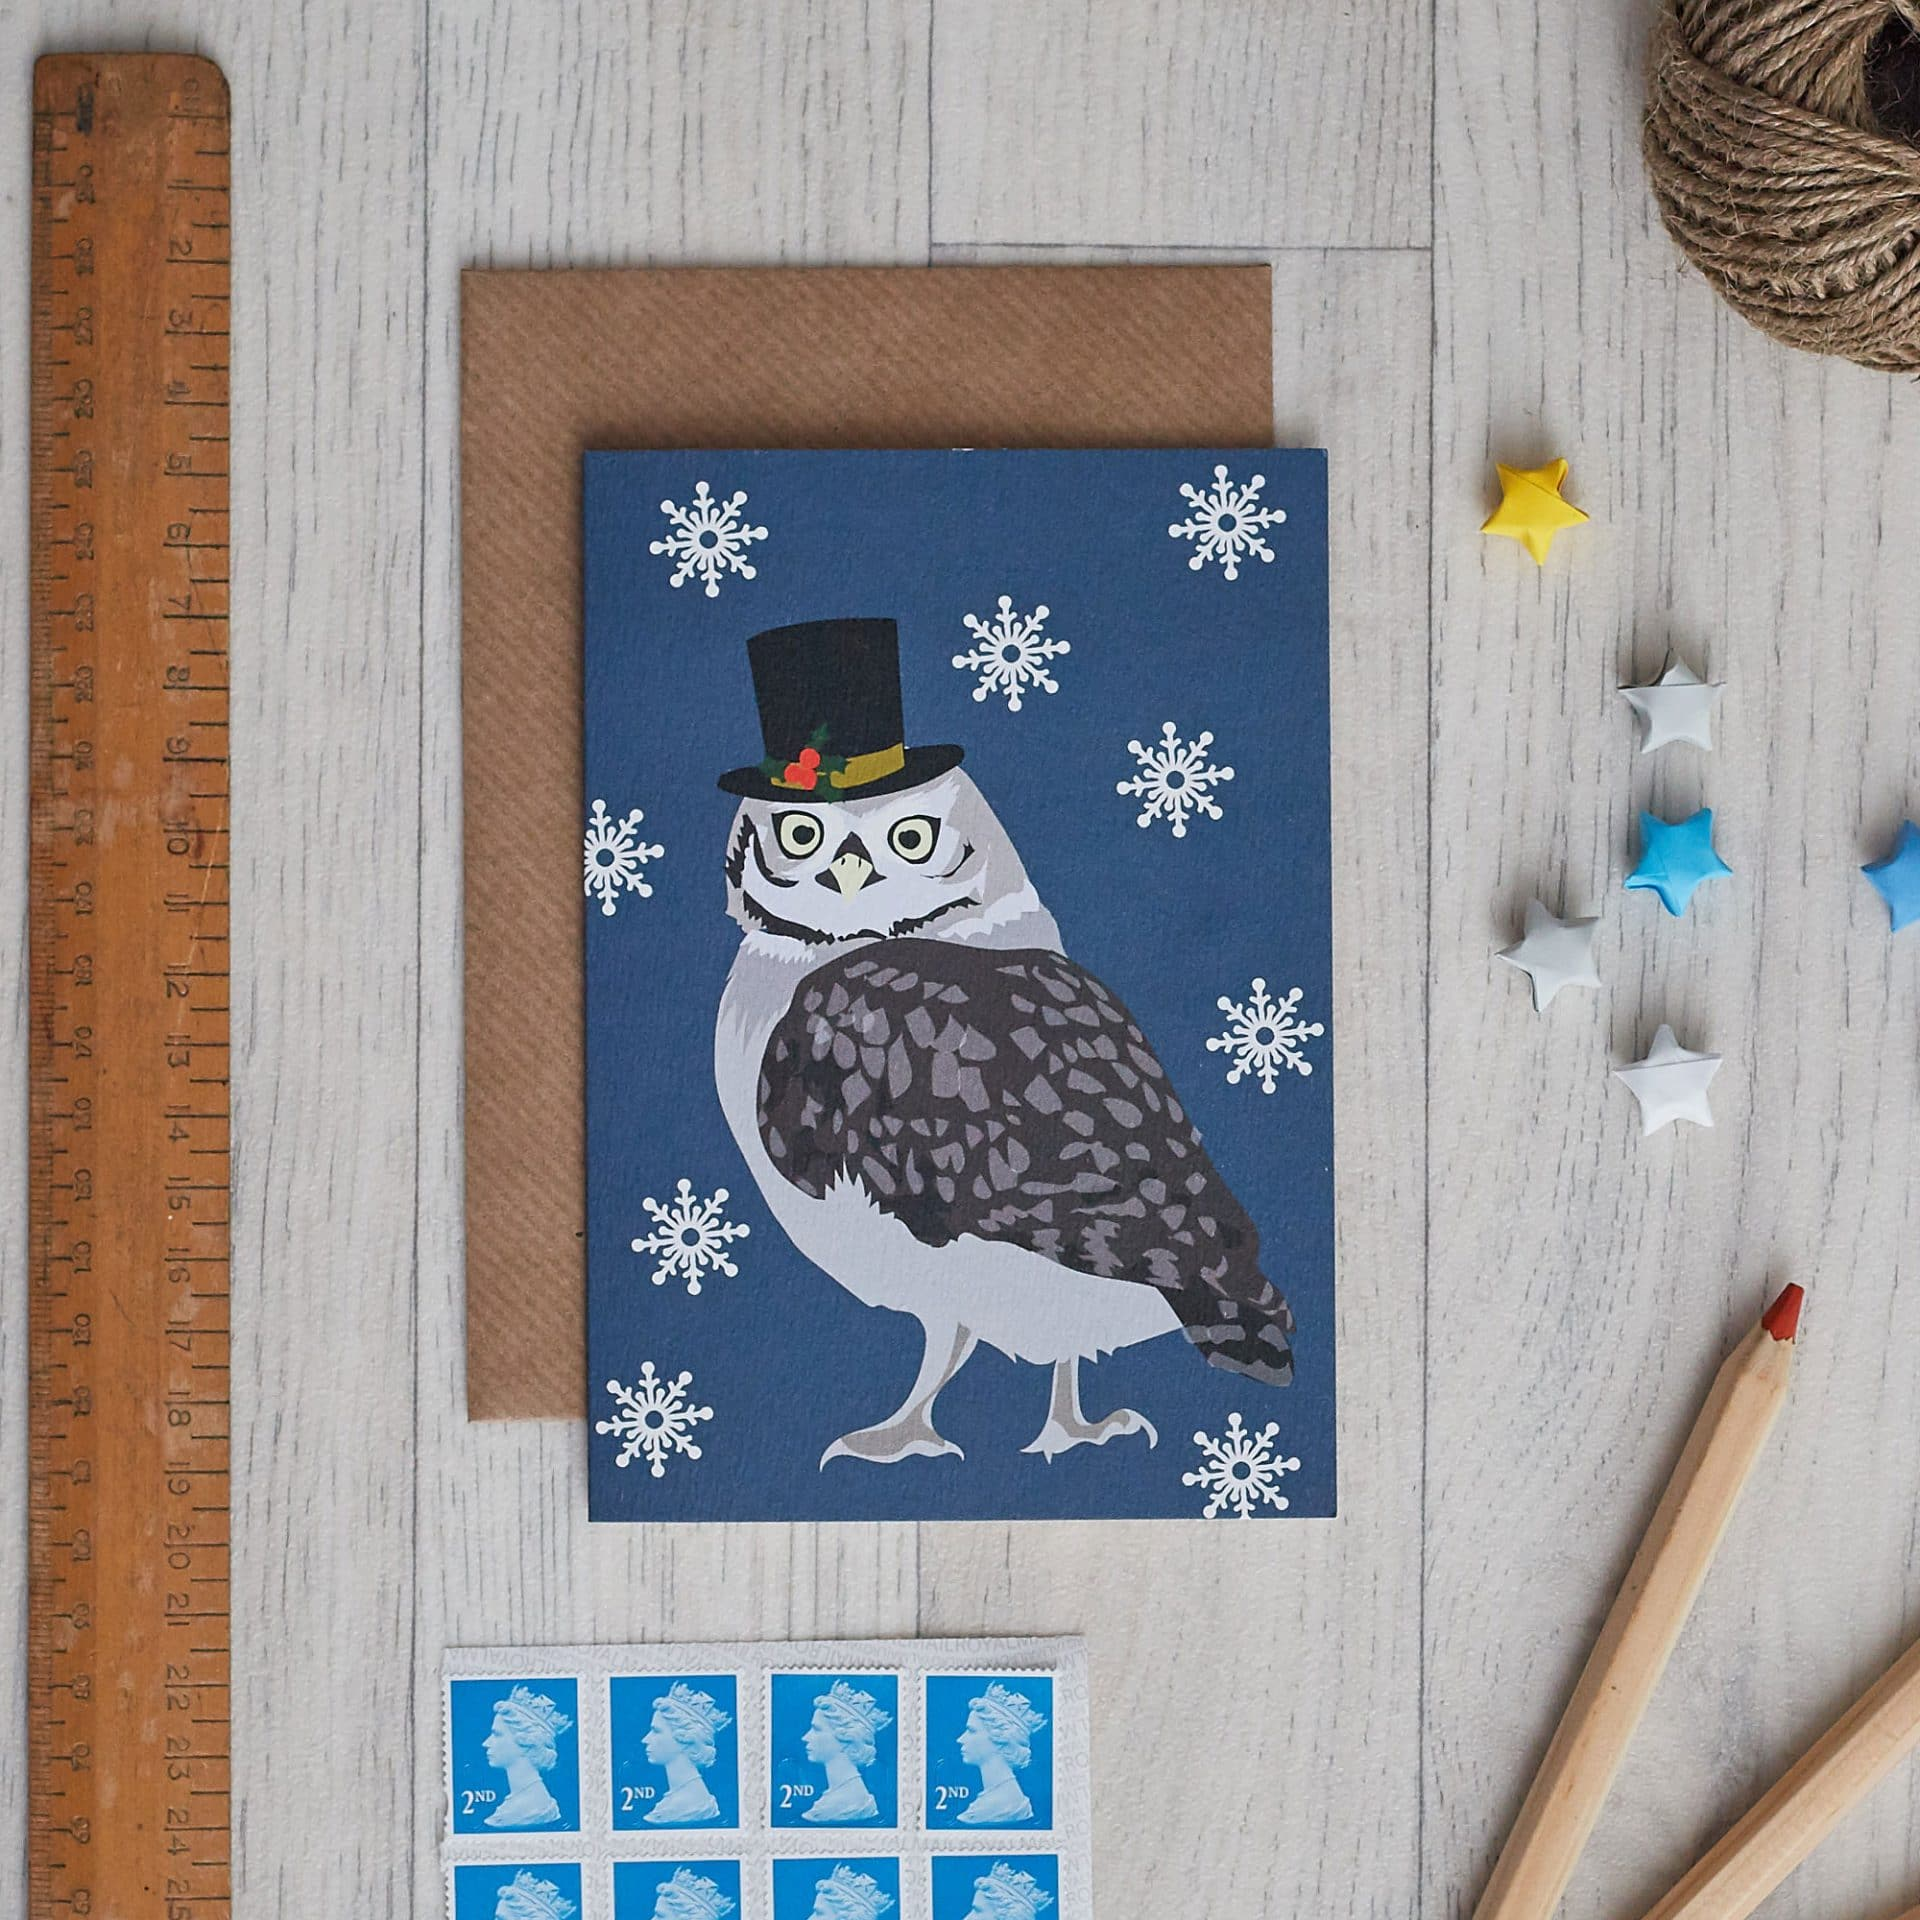 Christmas Card Luxury Designer Personalised Message Sustainable Environmentally Friendly FSC Paper Plastic Free - Christmas owl card by lorna syson